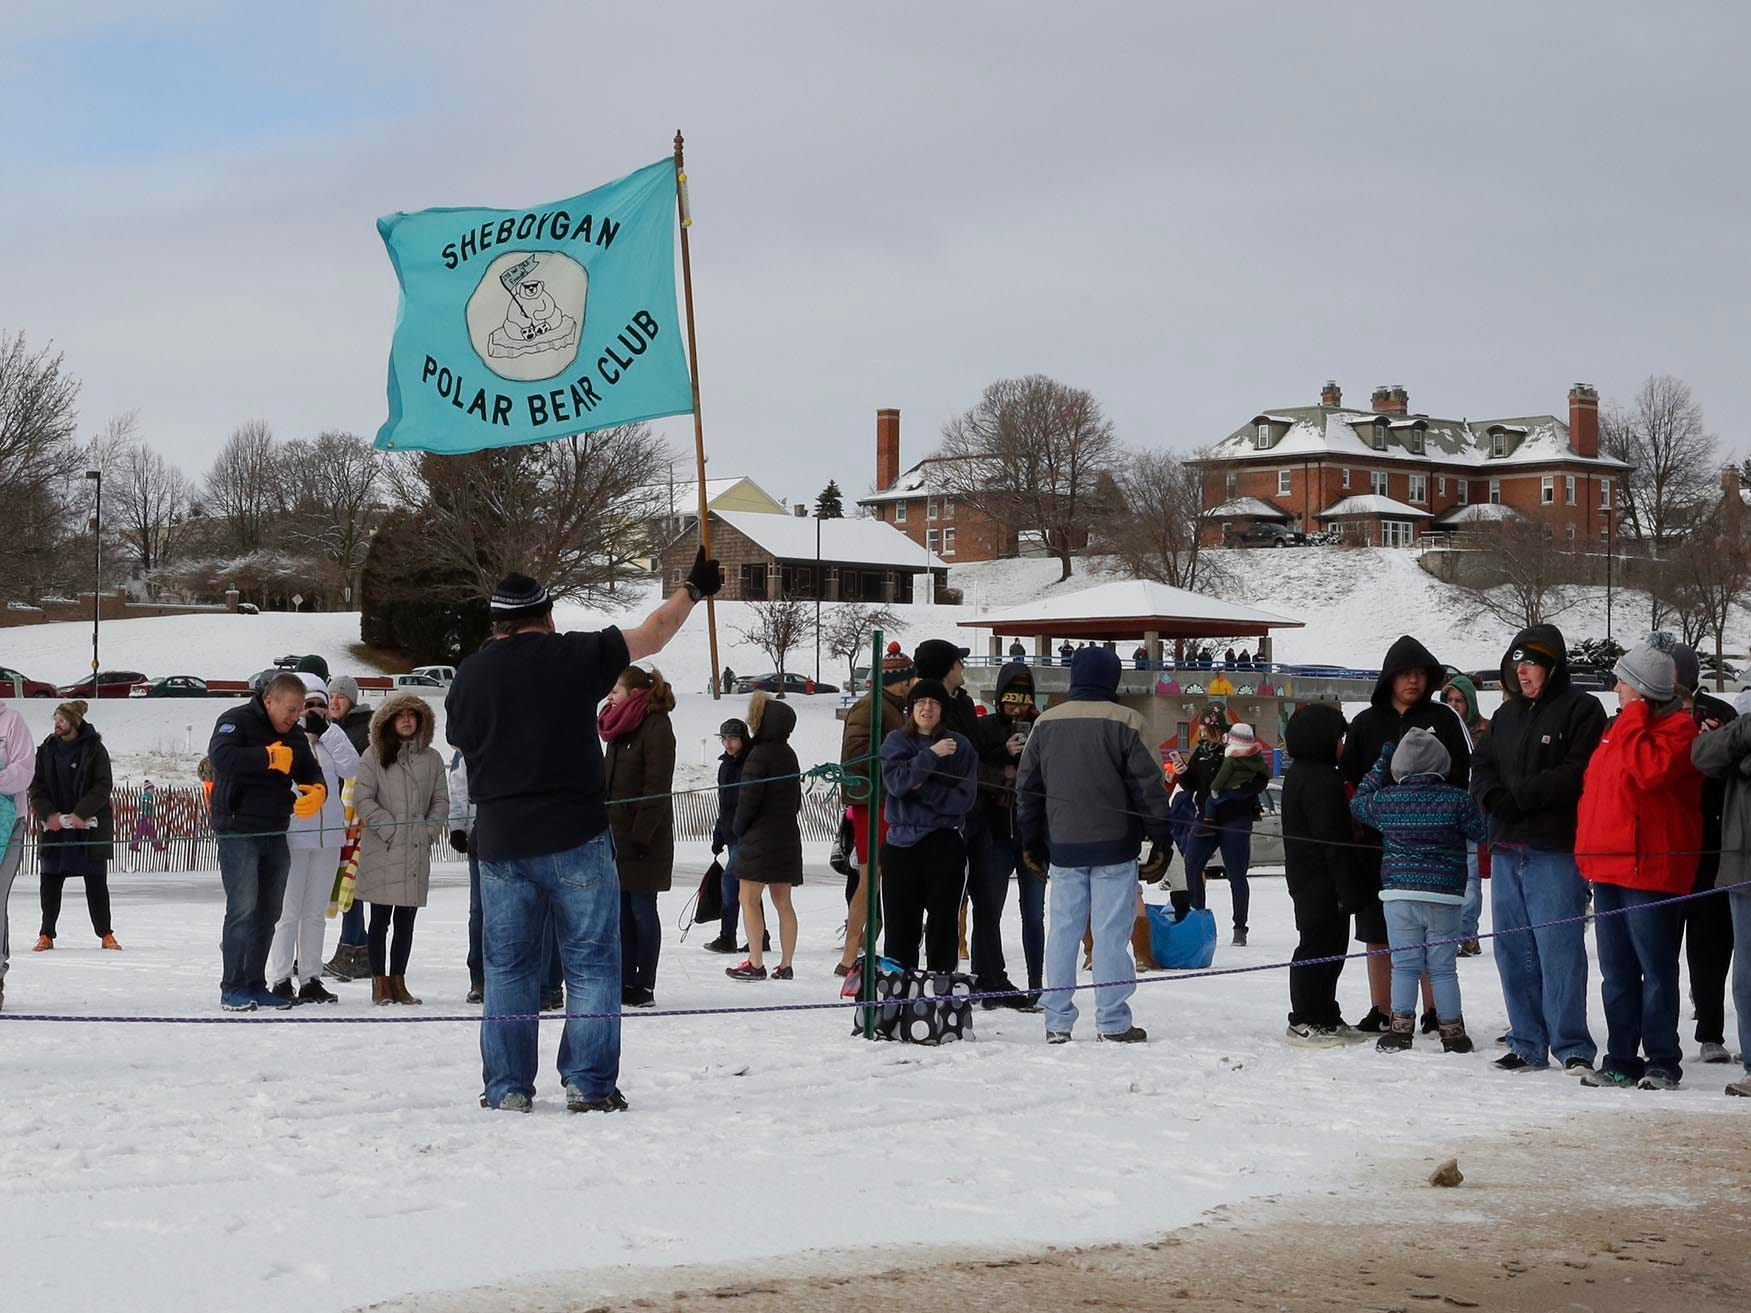 Polar Bear Club's Larry Pratt holds high the club's banner before starting the Polar Bear Dip, Tuesday, January 1, 2019, at Deland Park in Sheboygan, Wis.